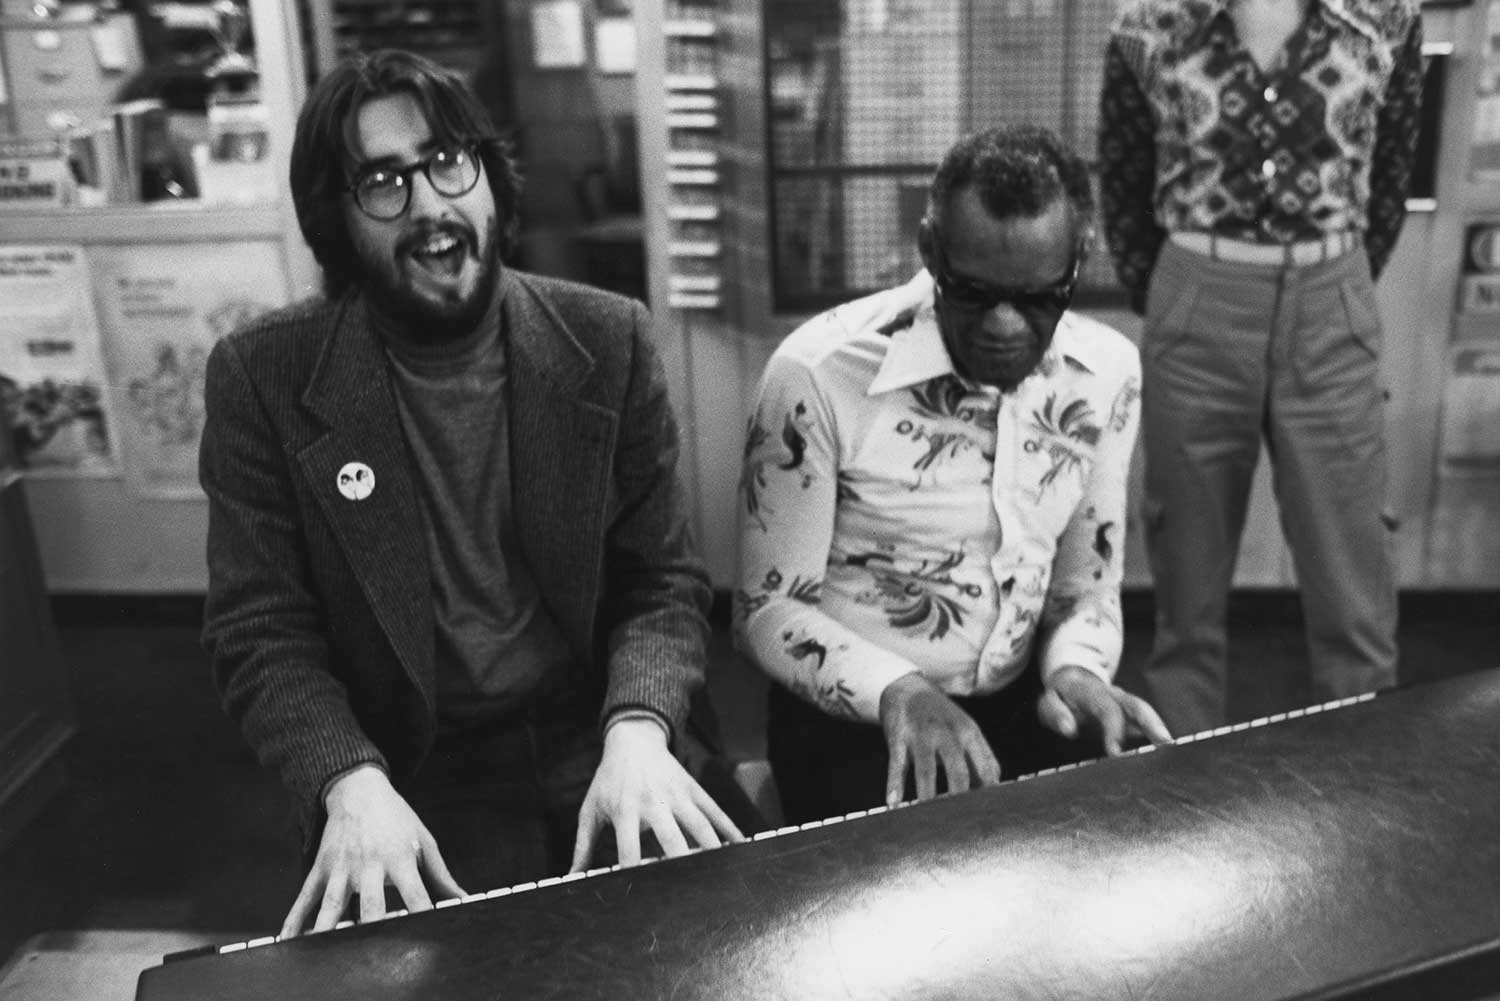 Director John Landis shares a musical moment with Ray Charles during the making of The Blues Brothers.